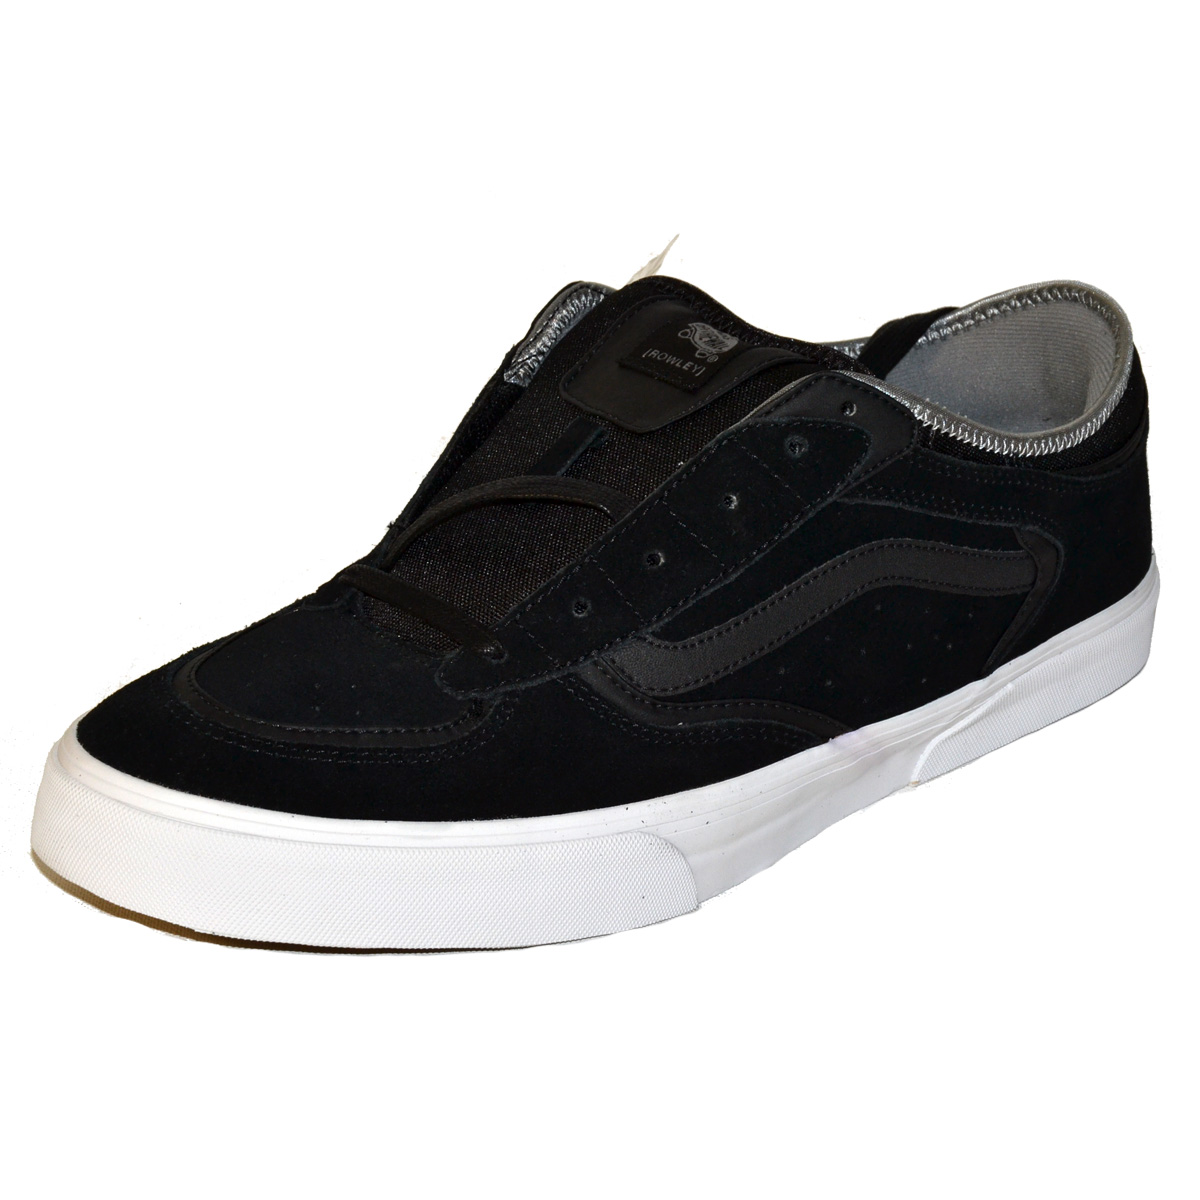 257db612abd Vans Rowley Pro Black Mens Shoes - MyCraze